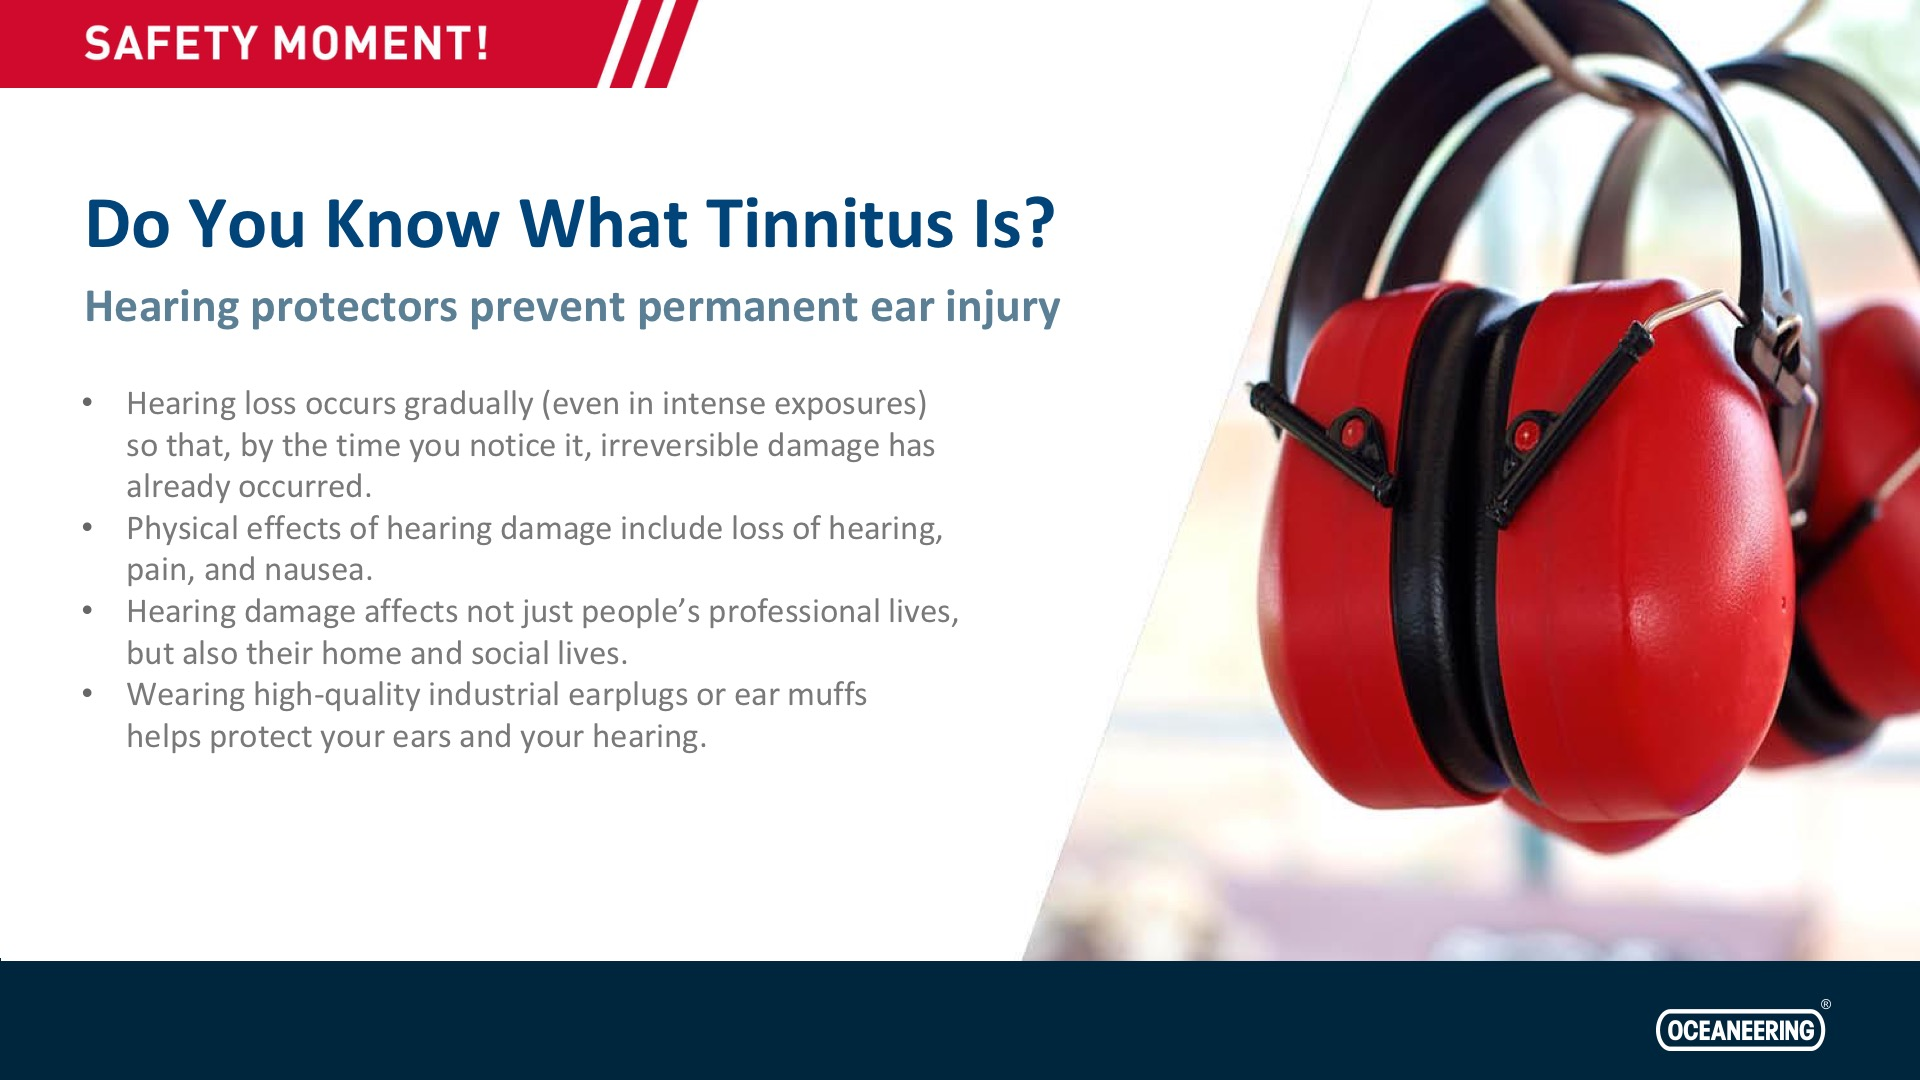 Do You Know What Tinnitus is?